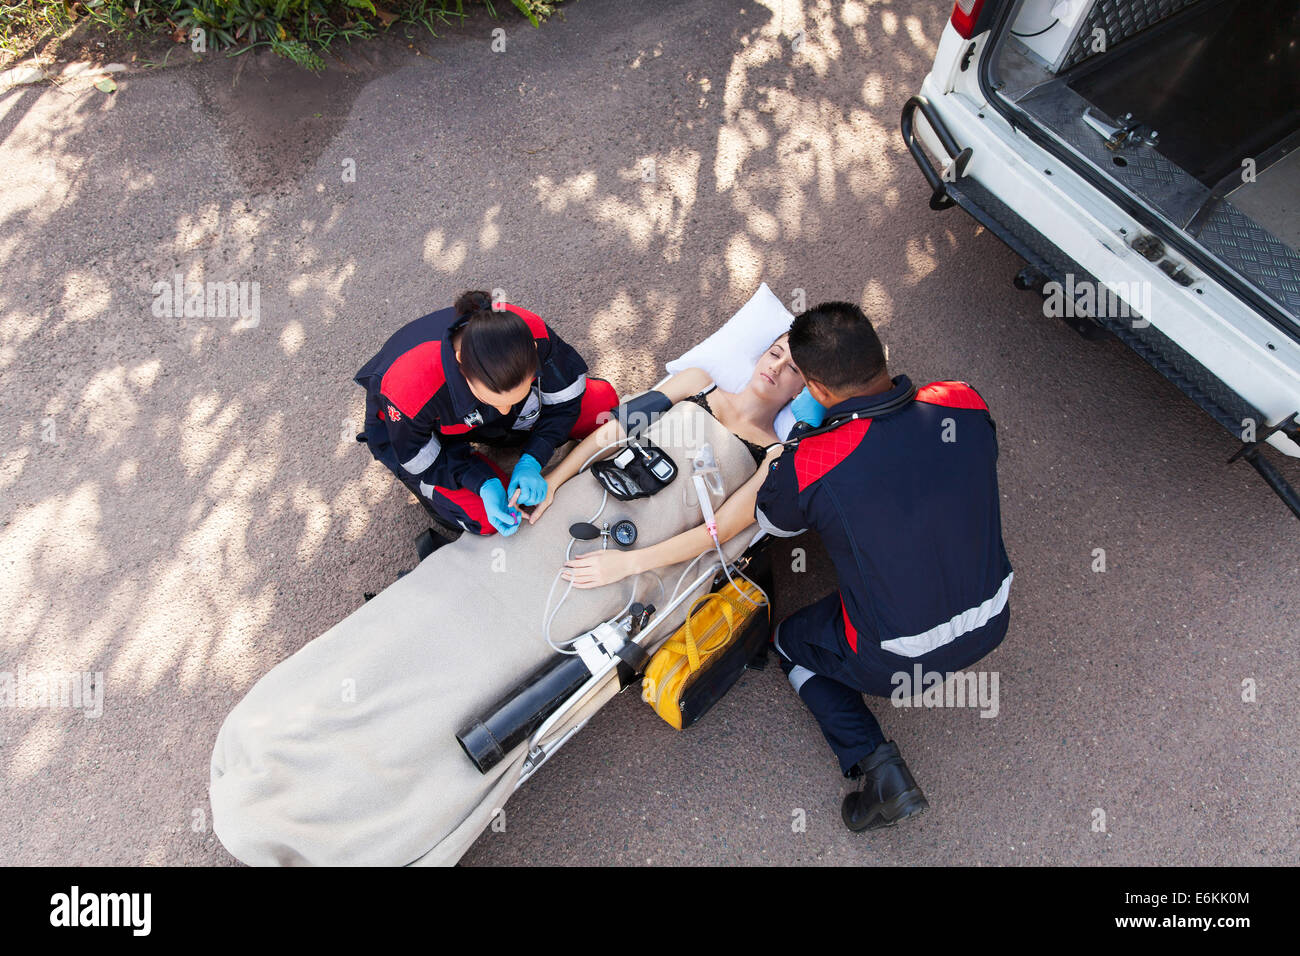 overhead view of paramedic team providing first aid to unconscious woman Stock Photo